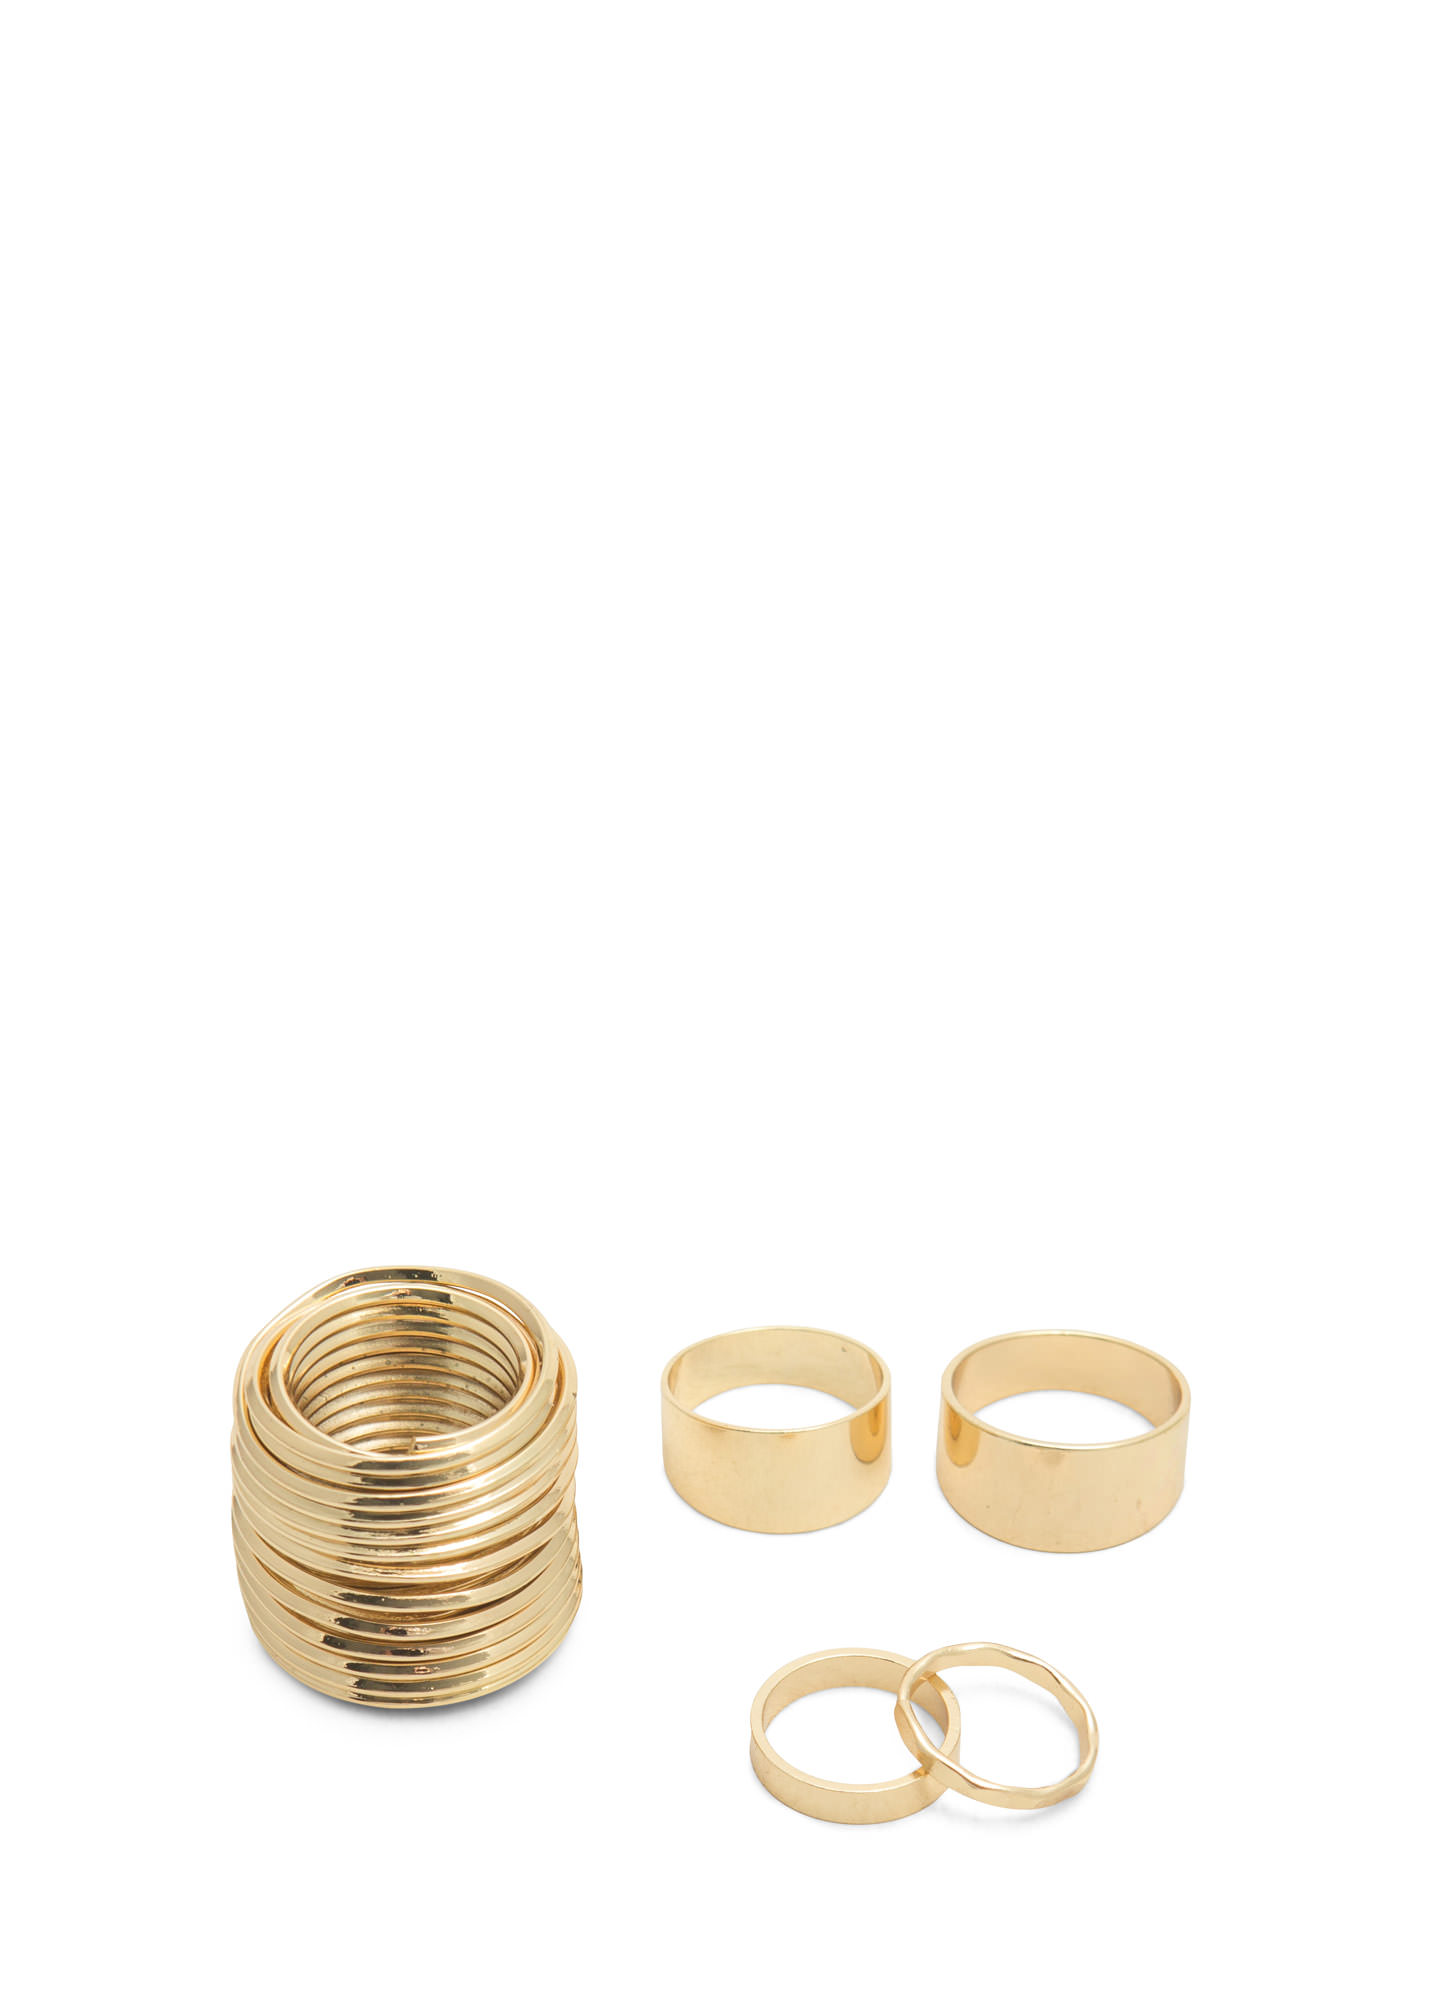 Metallic Coiled Ring Set GOLD